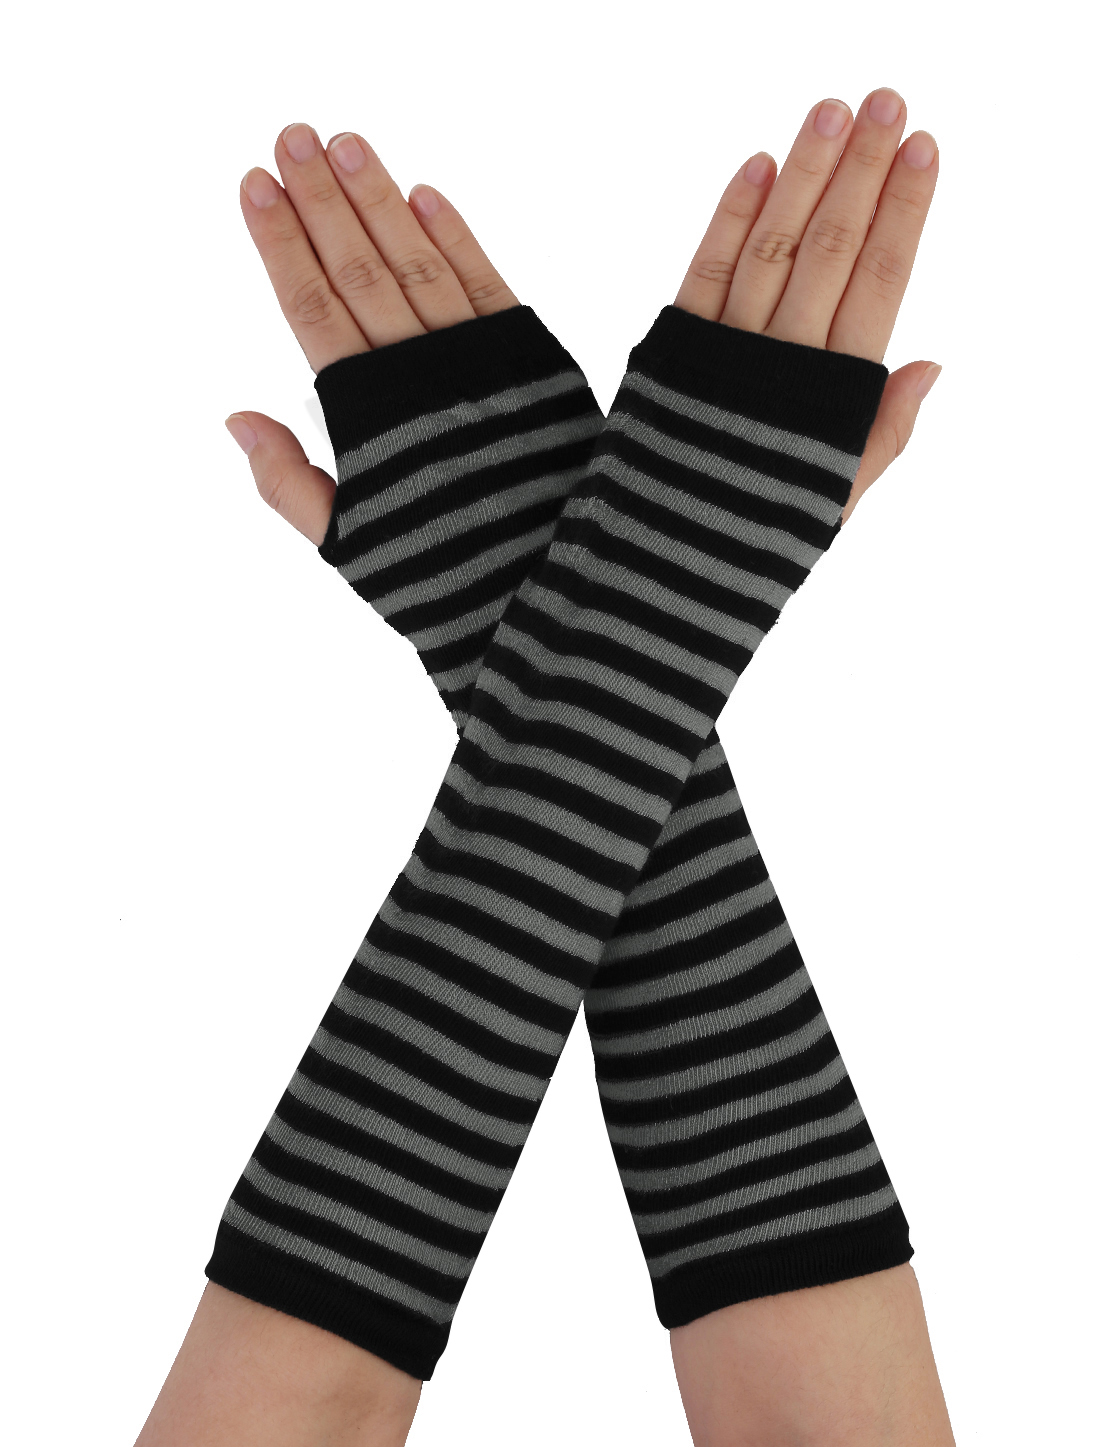 Lady Stripes Pattern Black Stretchy Fingerless Arm Warmers Elbow Long Gloves Pair